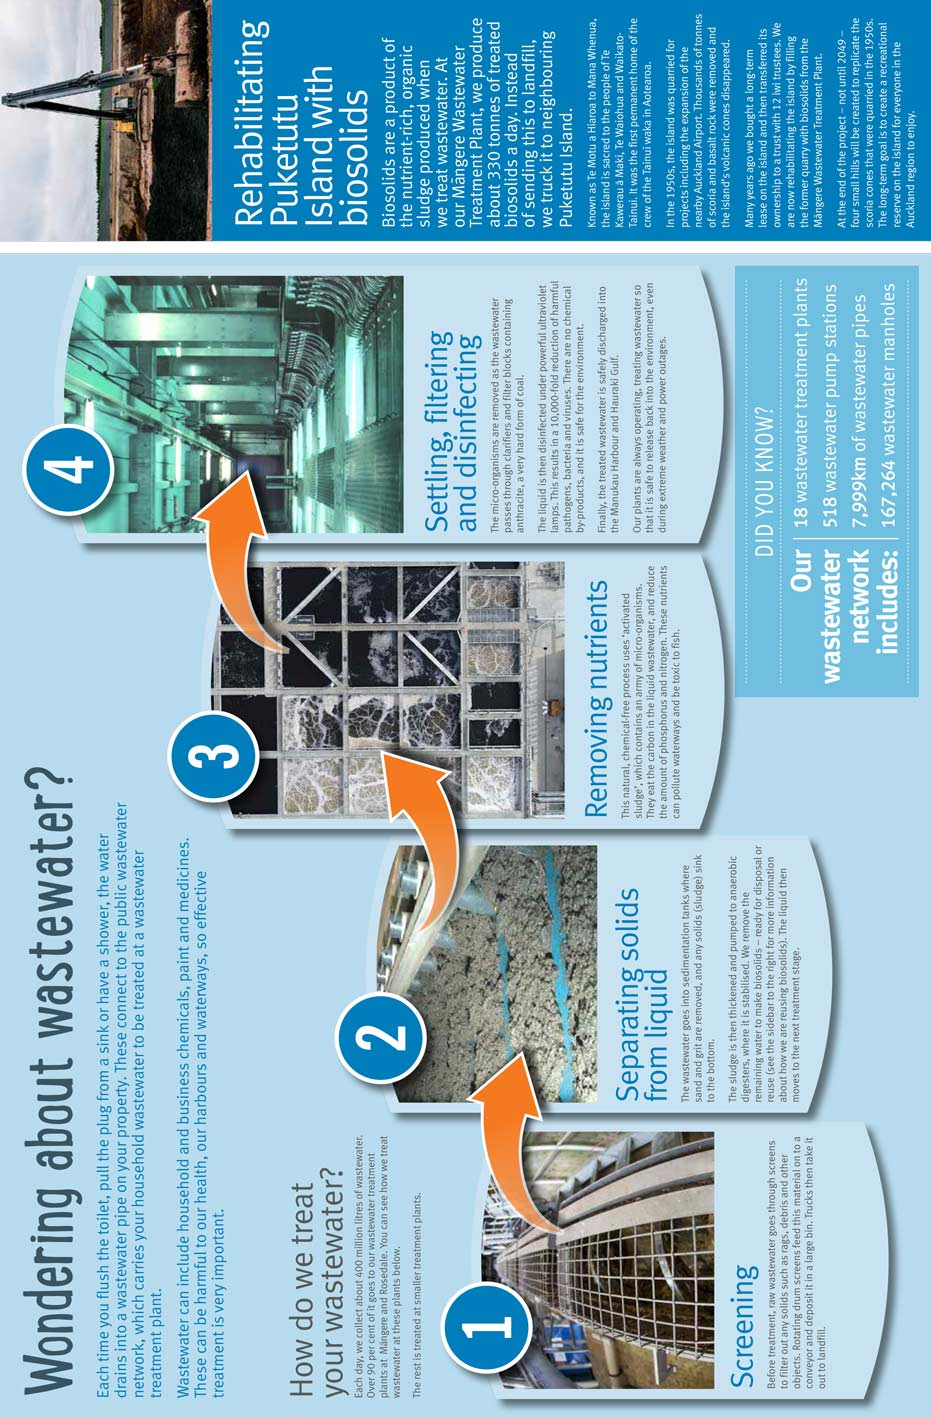 Wastewater_download.pdf